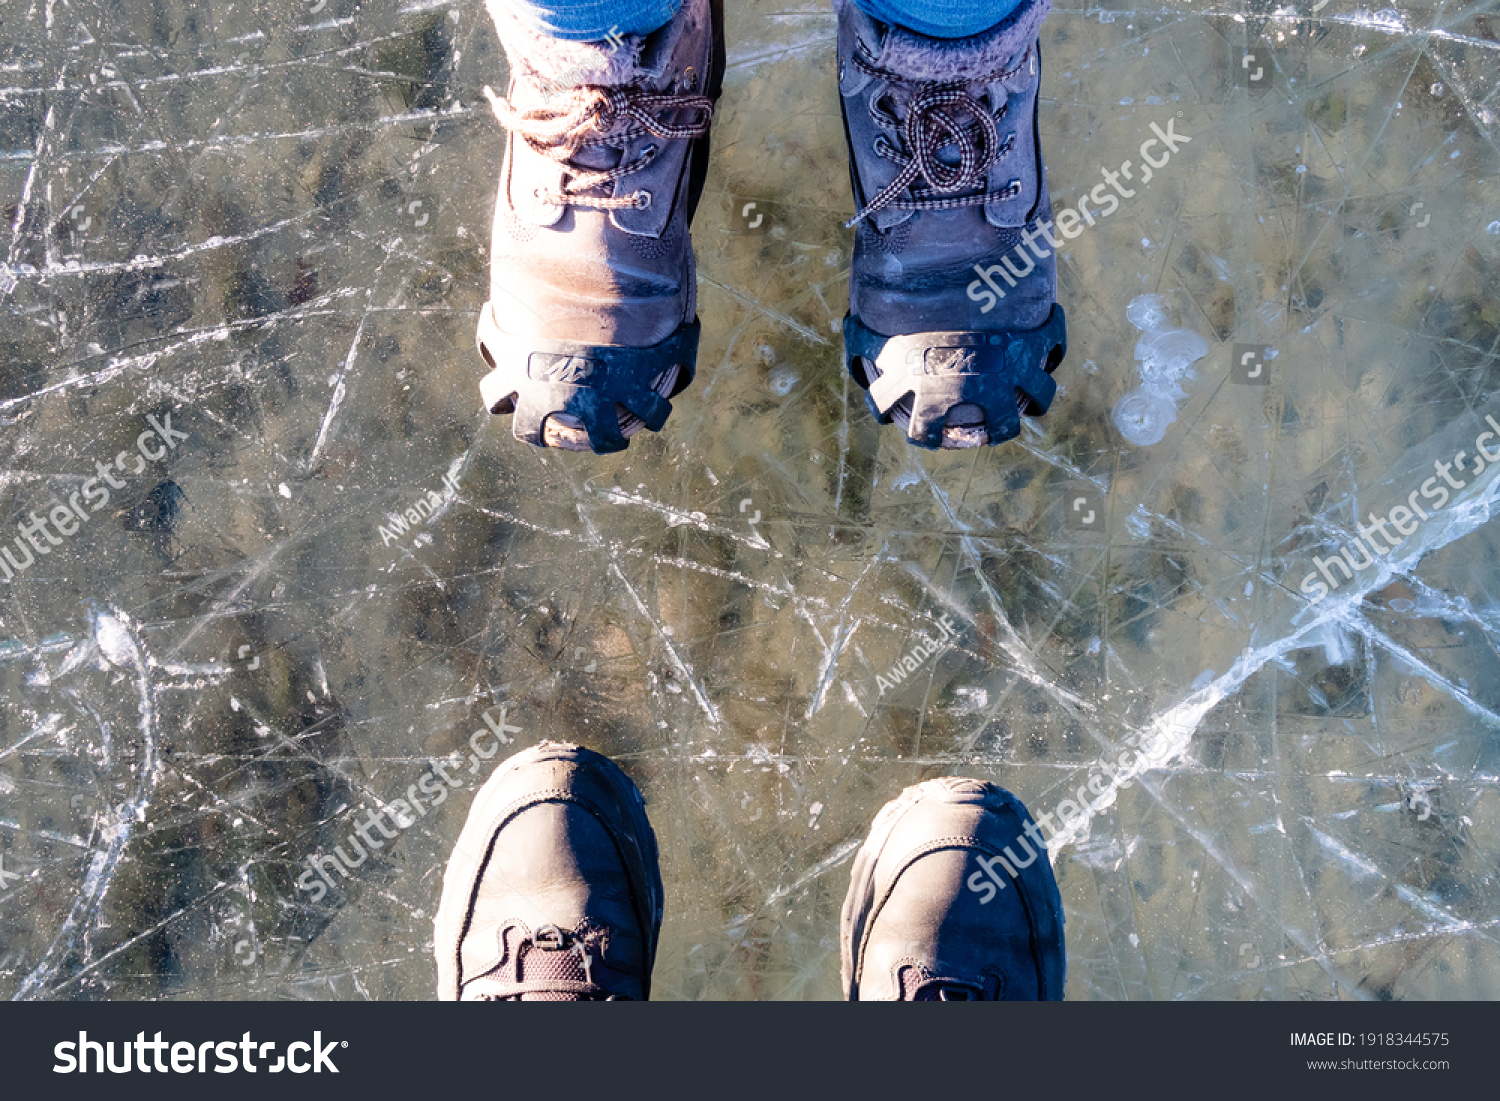 Banff national park, Canada - december  2020 : Top view of two pairs of winter boots on a frozen lake in Canada